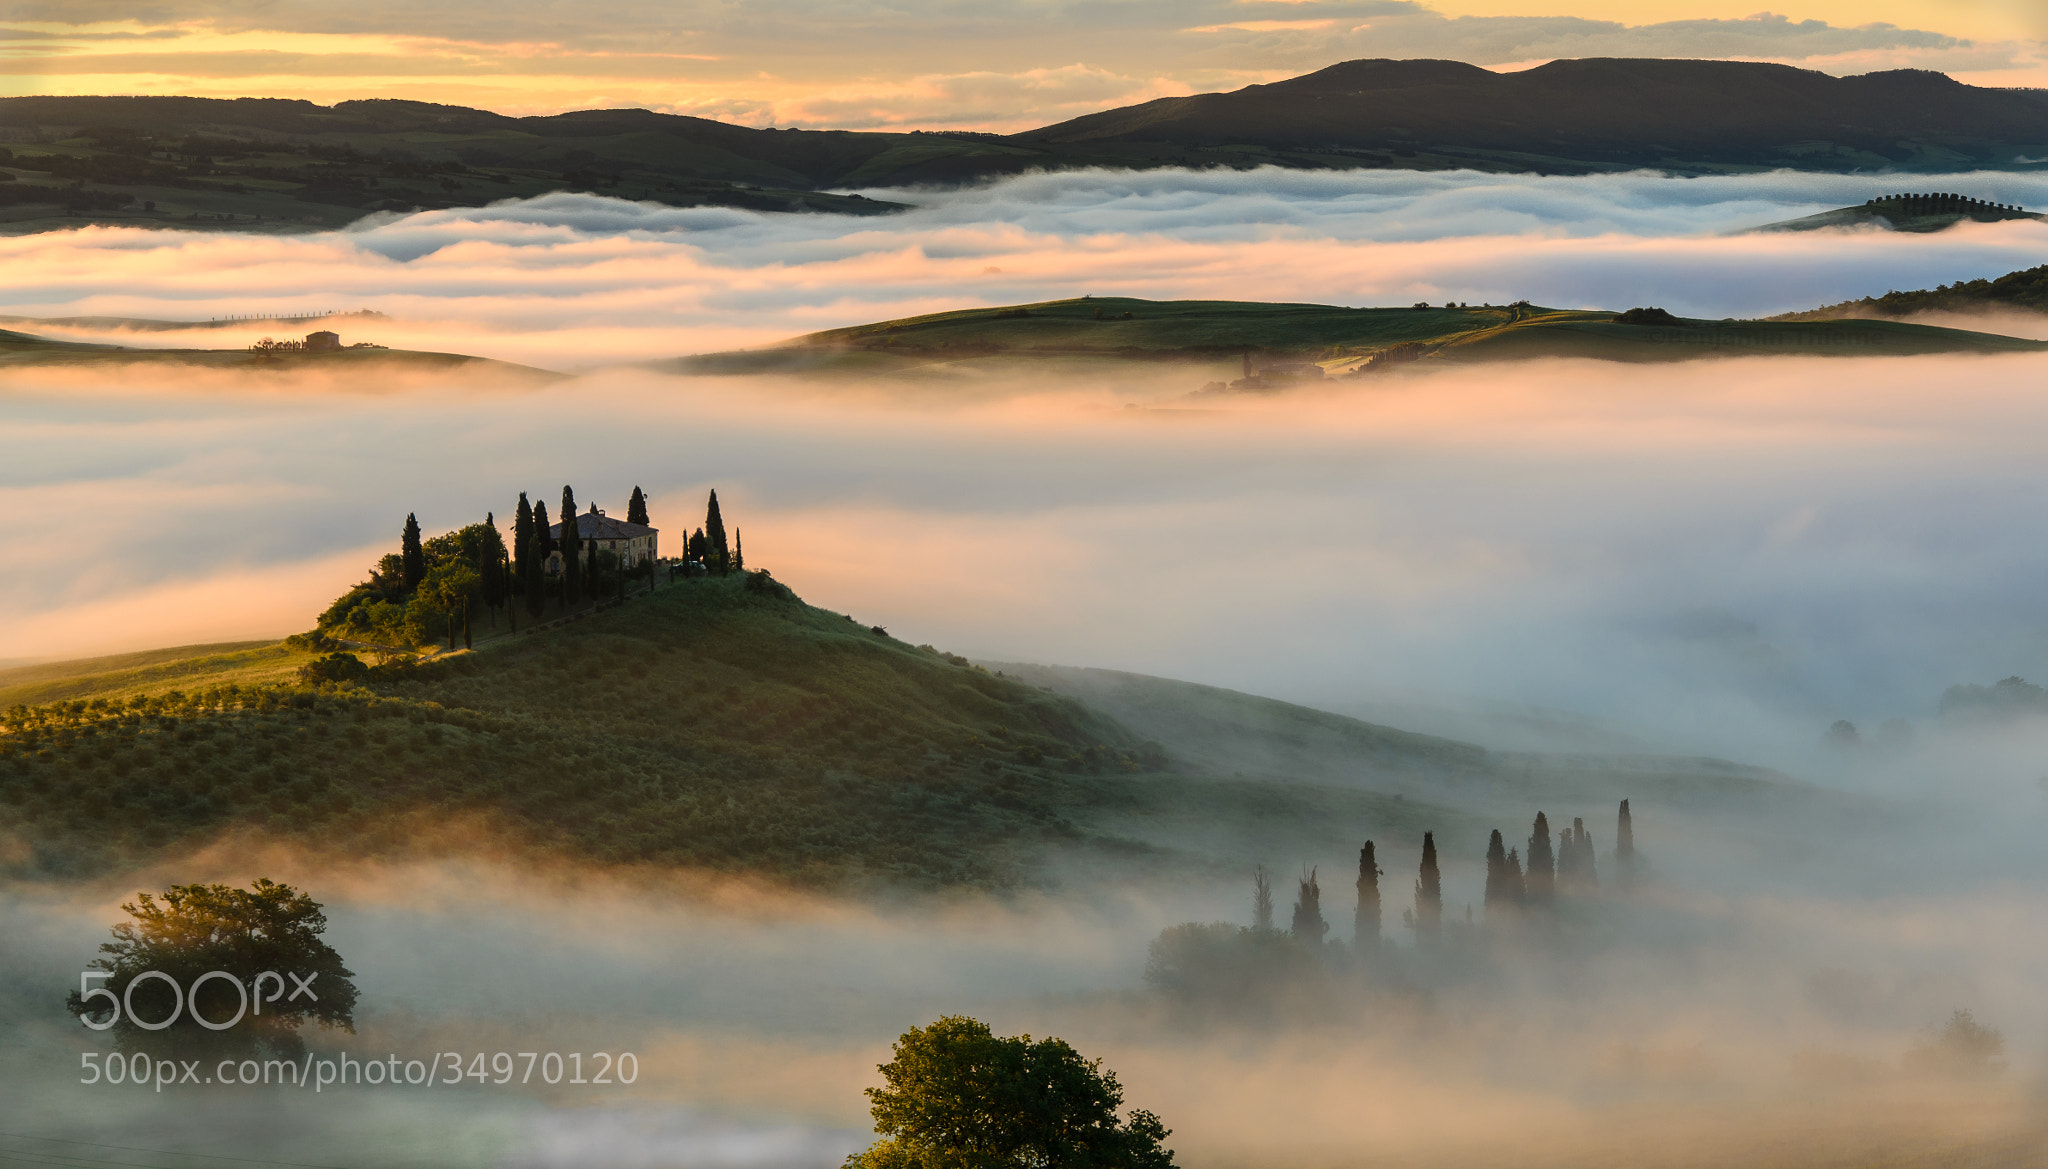 Photograph Golden Sunrise in Tuscany by Benjamin Thieme on 500px